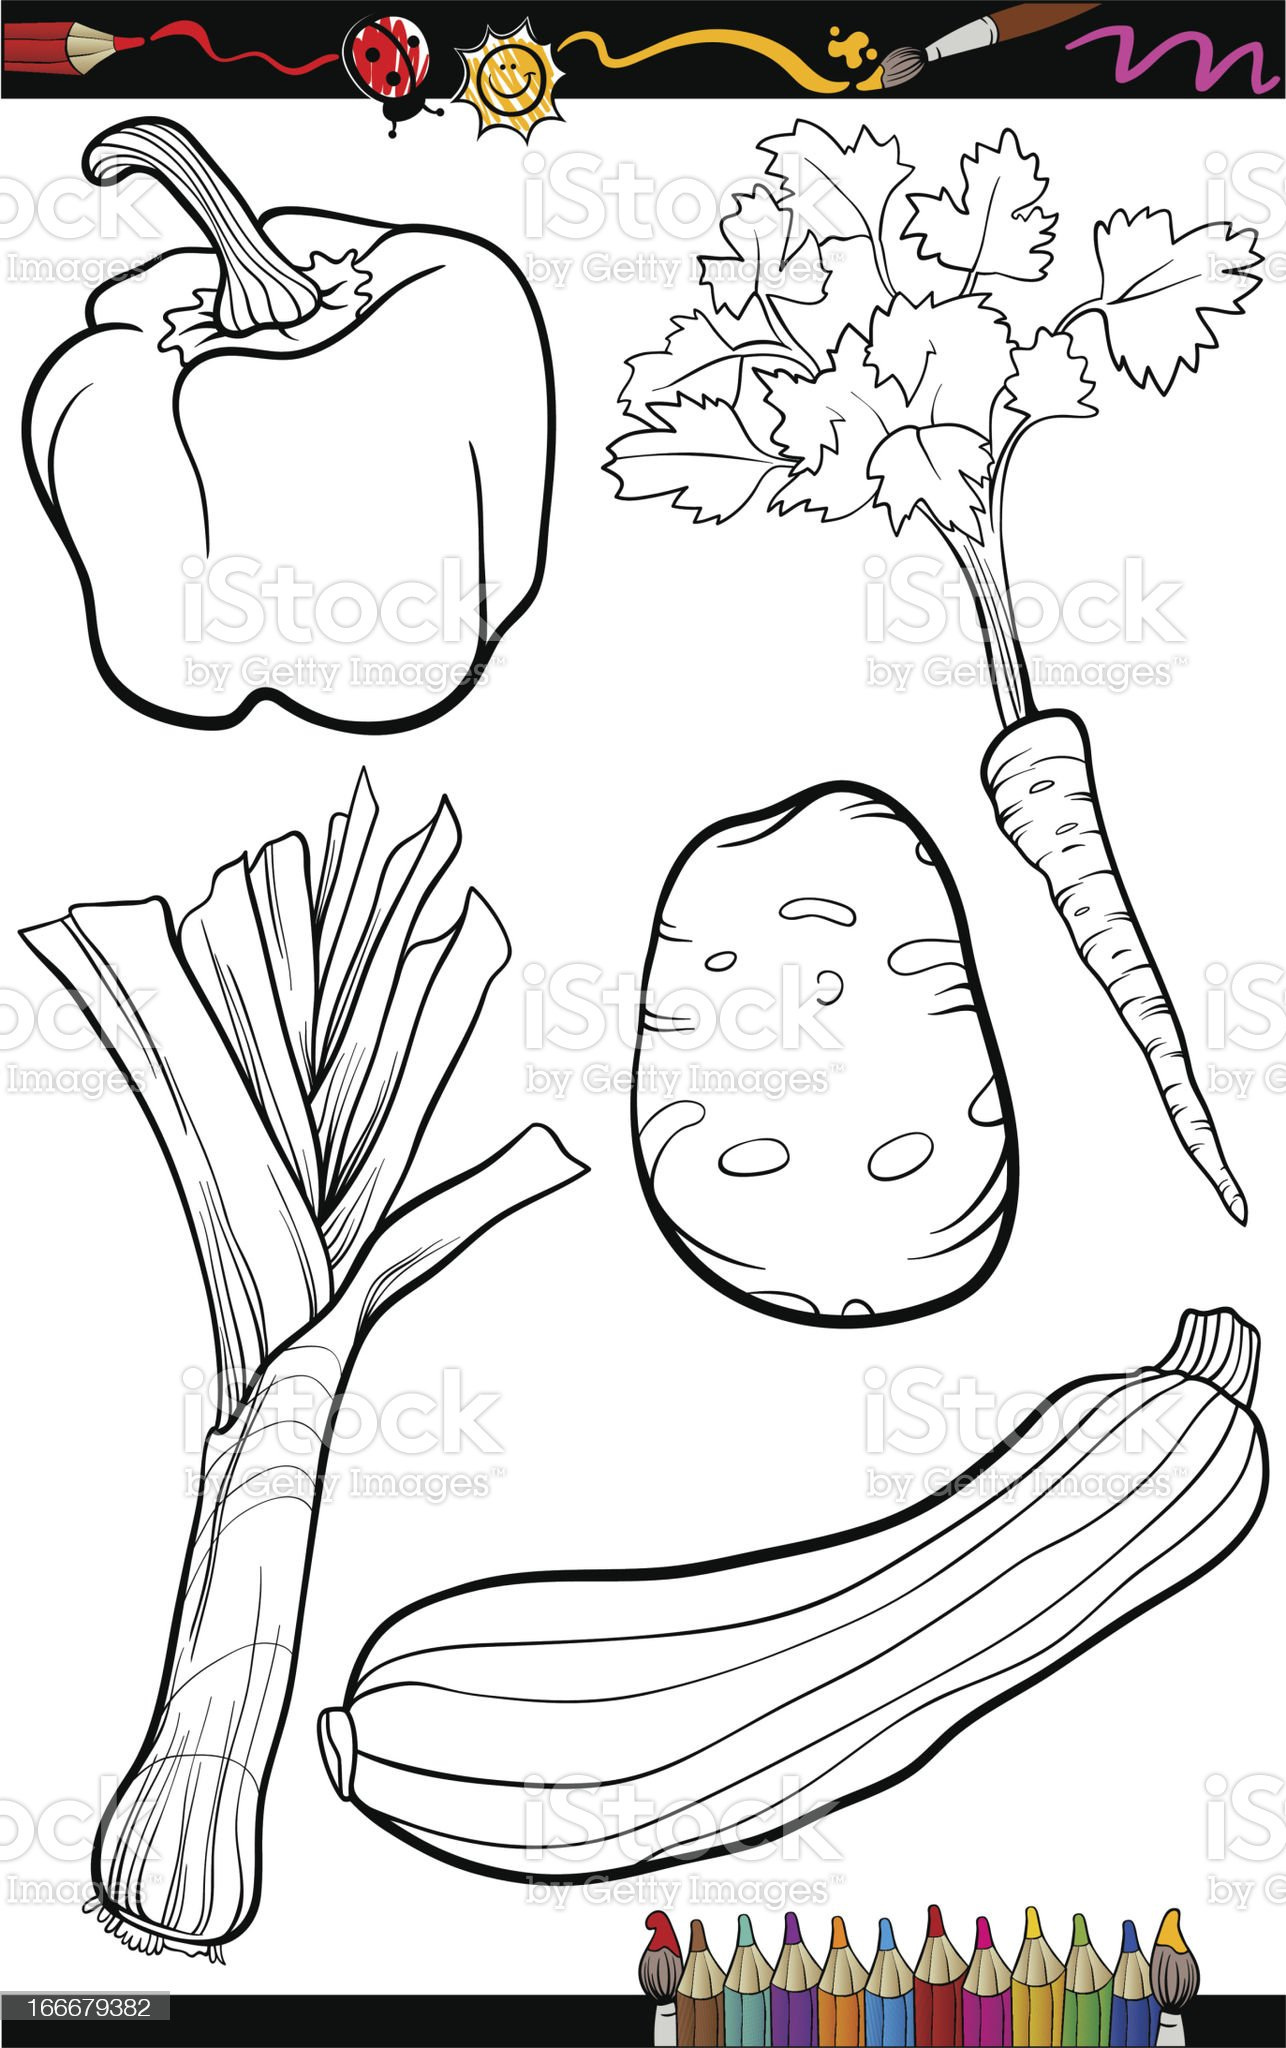 cartoon vegetables set for coloring book royalty-free stock vector art